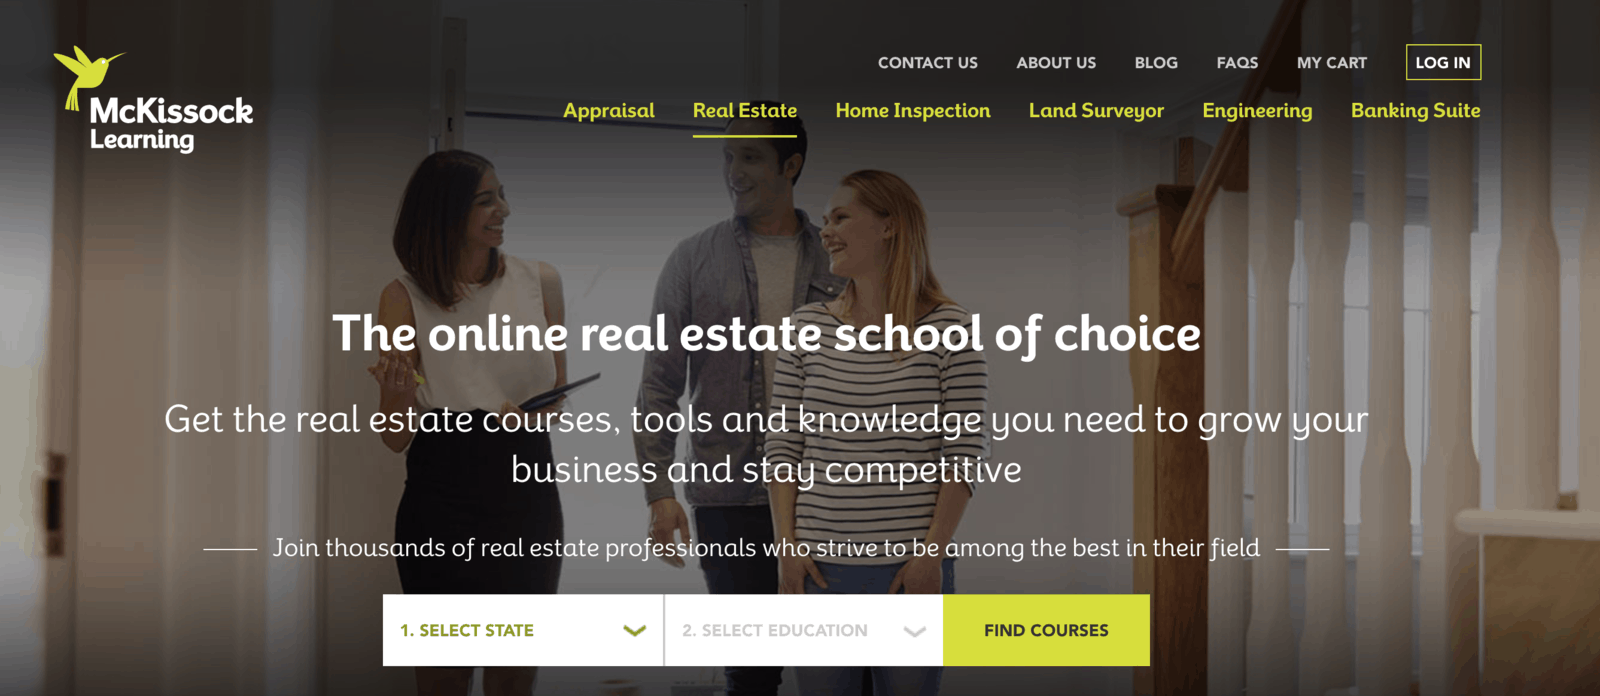 McKissock Learning Real Estate Continuing Education Website Screenshot